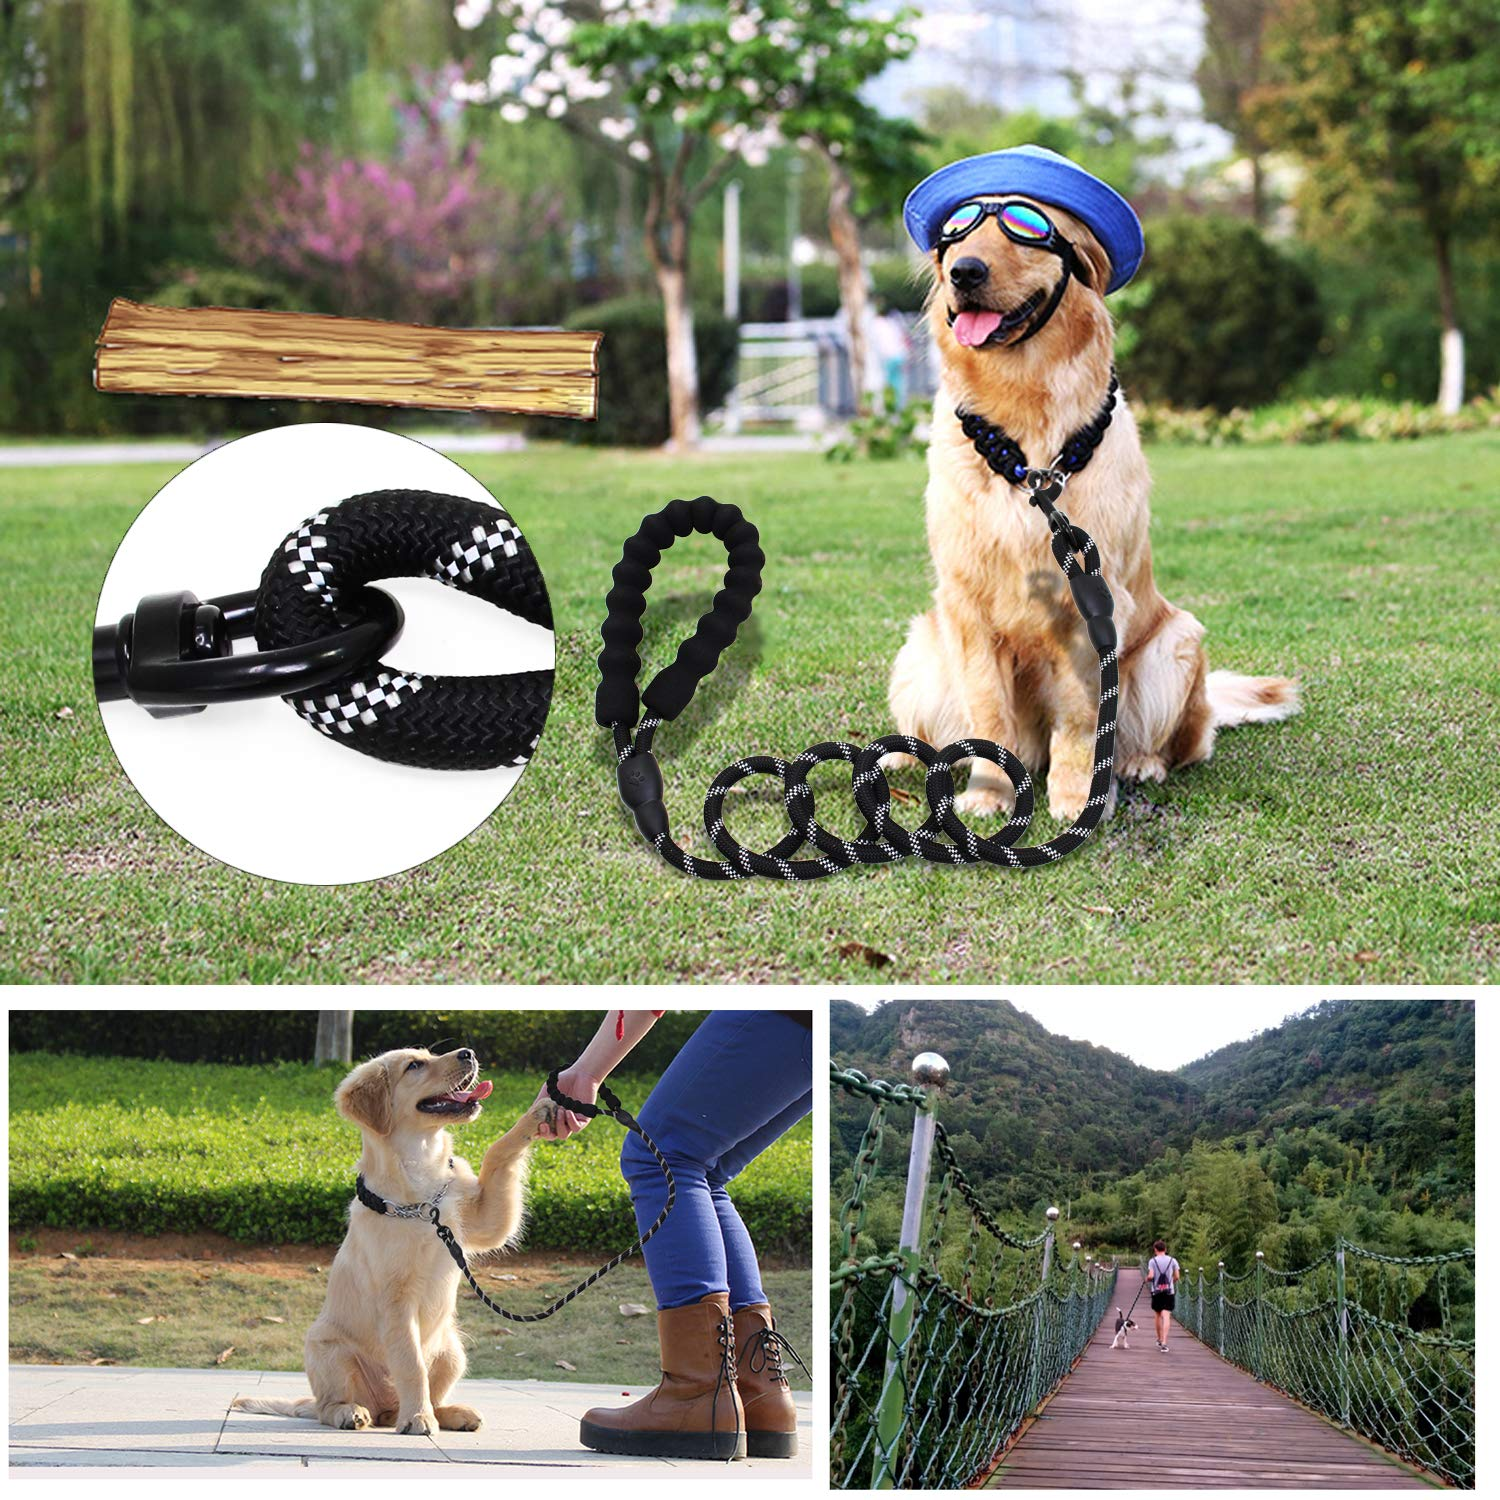 abcGoodefg 5 FT Strong Heavy Duty Dog Leash Lead with Soft Padded Handle and Highly Reflective Threads Light Up Dog Leash for Small, Medium and Large Dogs LEAD-BK